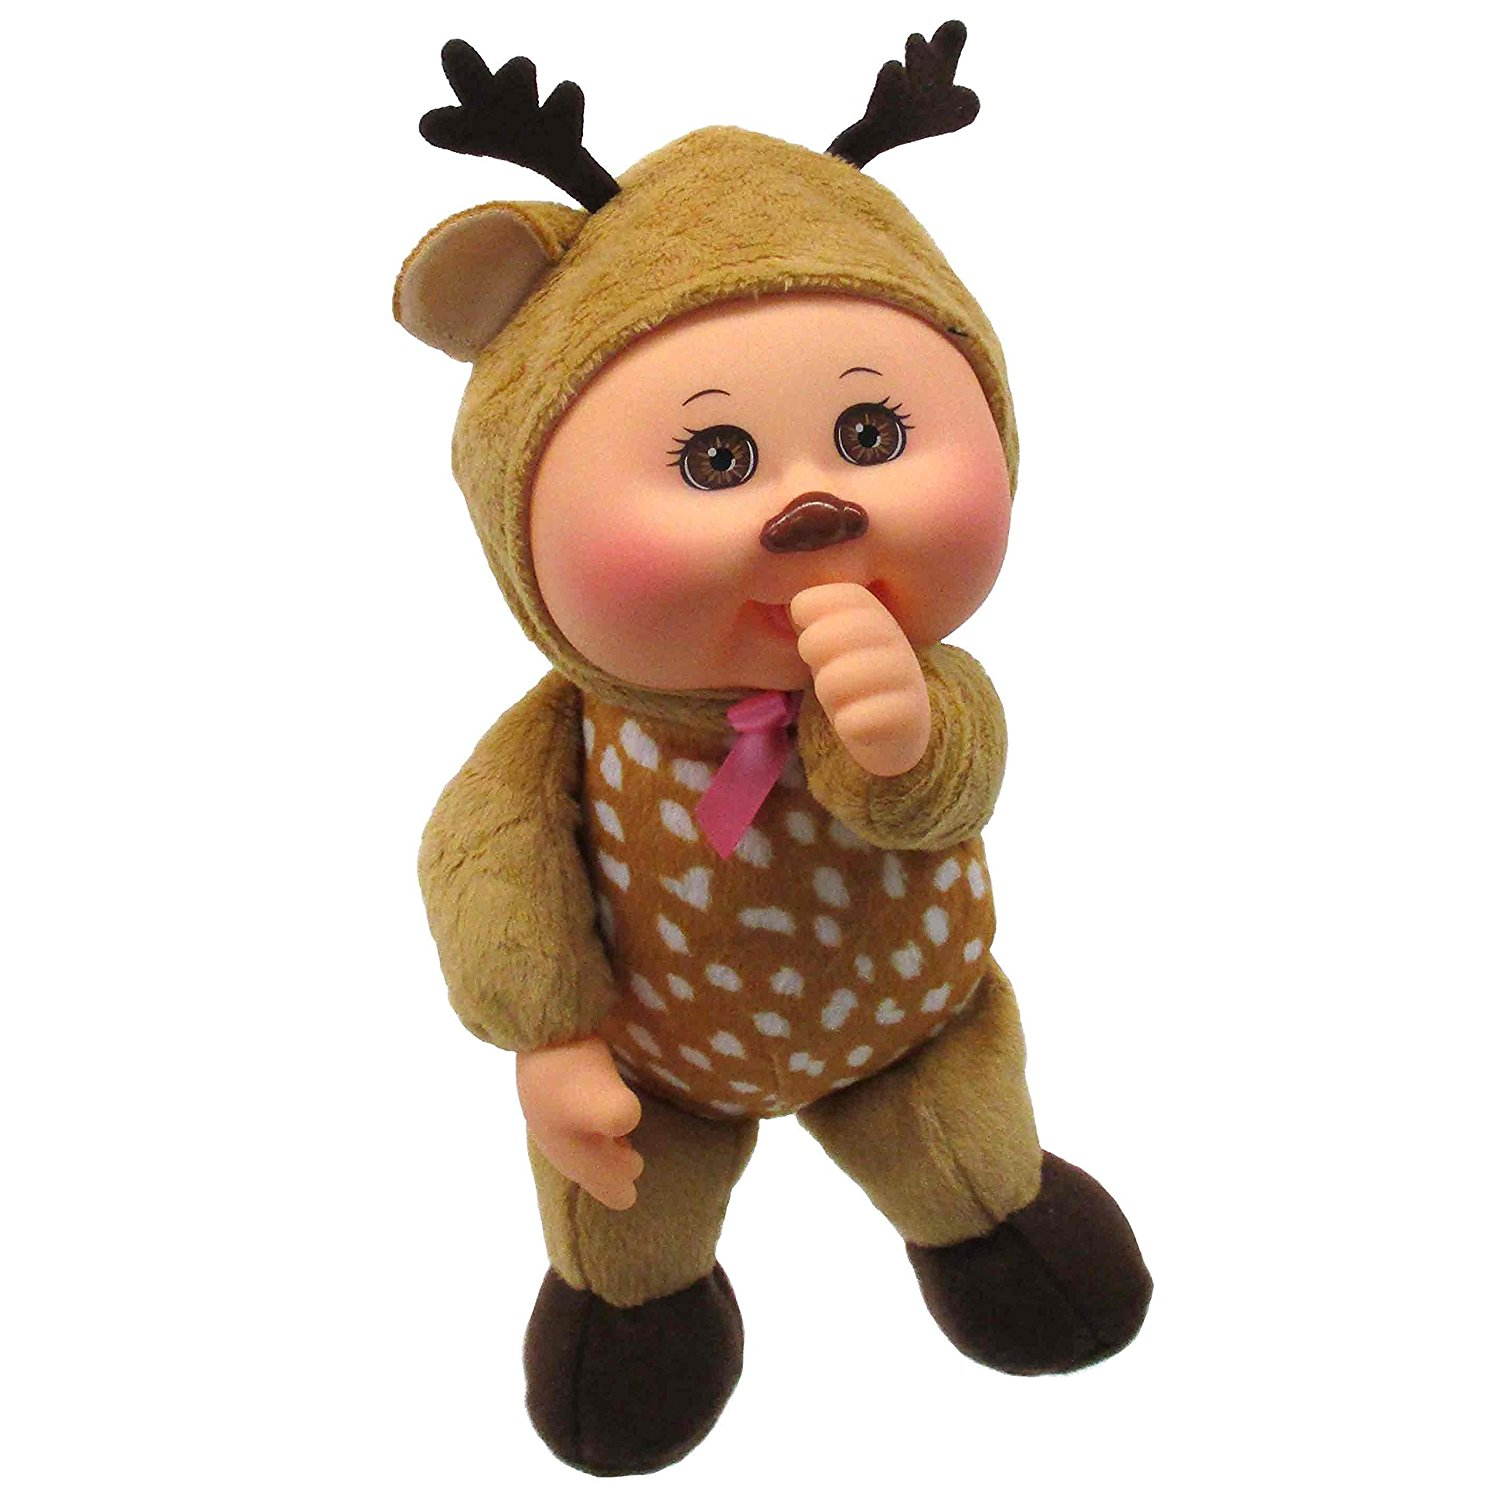 Cabbage Patch Cuties Forest Friends Sage Deer #37, Cabbage Patch Cuties Forest Friends Sage Deer By Wicked Cool Toys